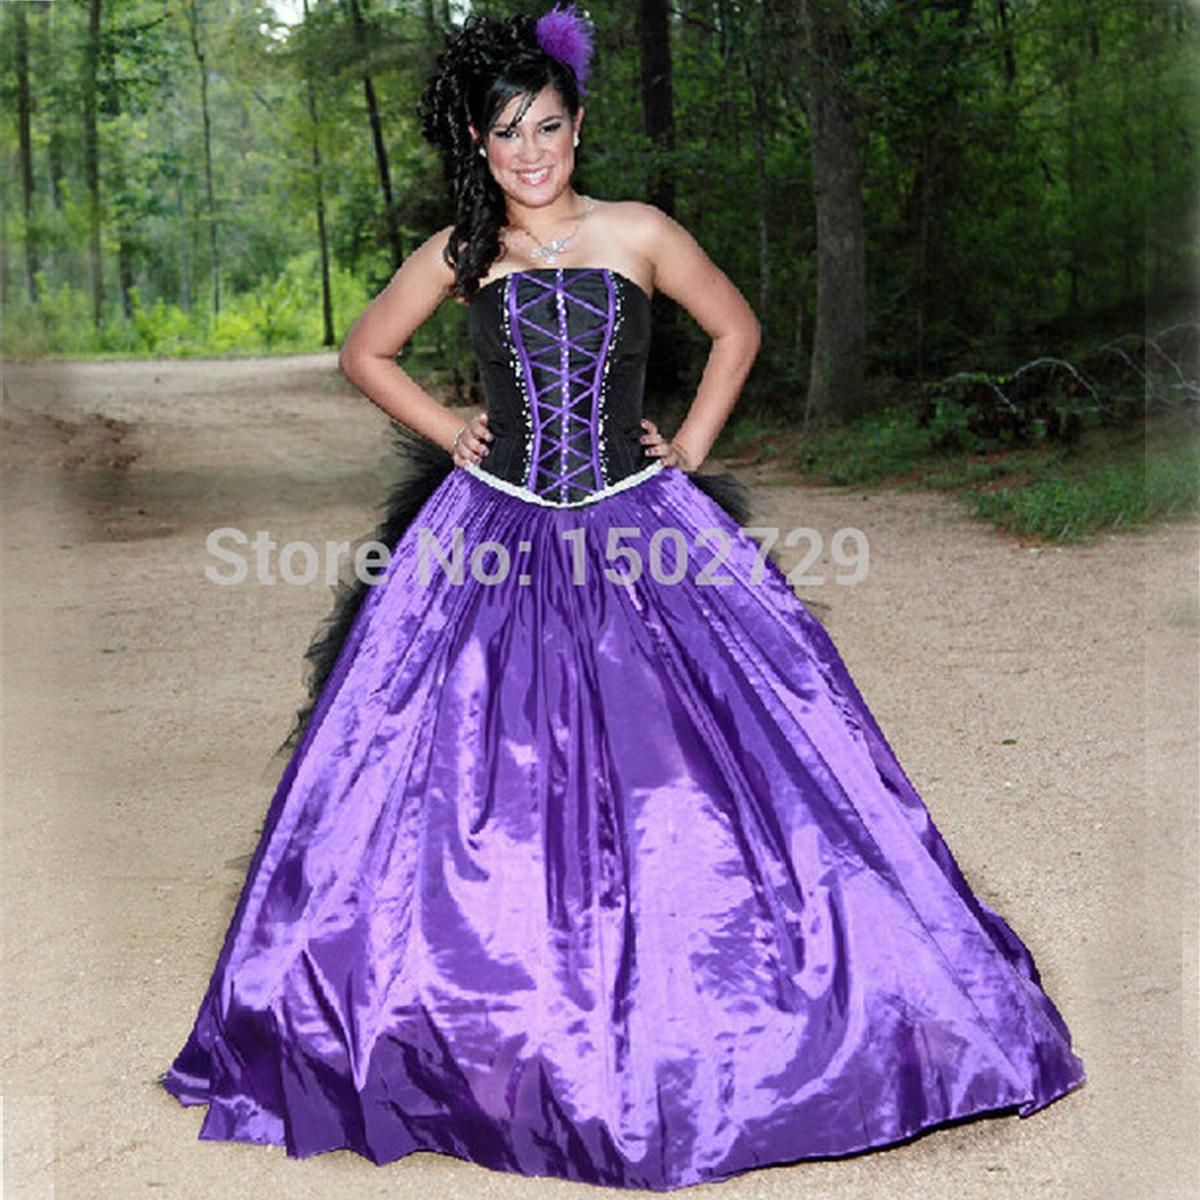 2015 Purple And Black Ball Gown Gothic Wedding Dress